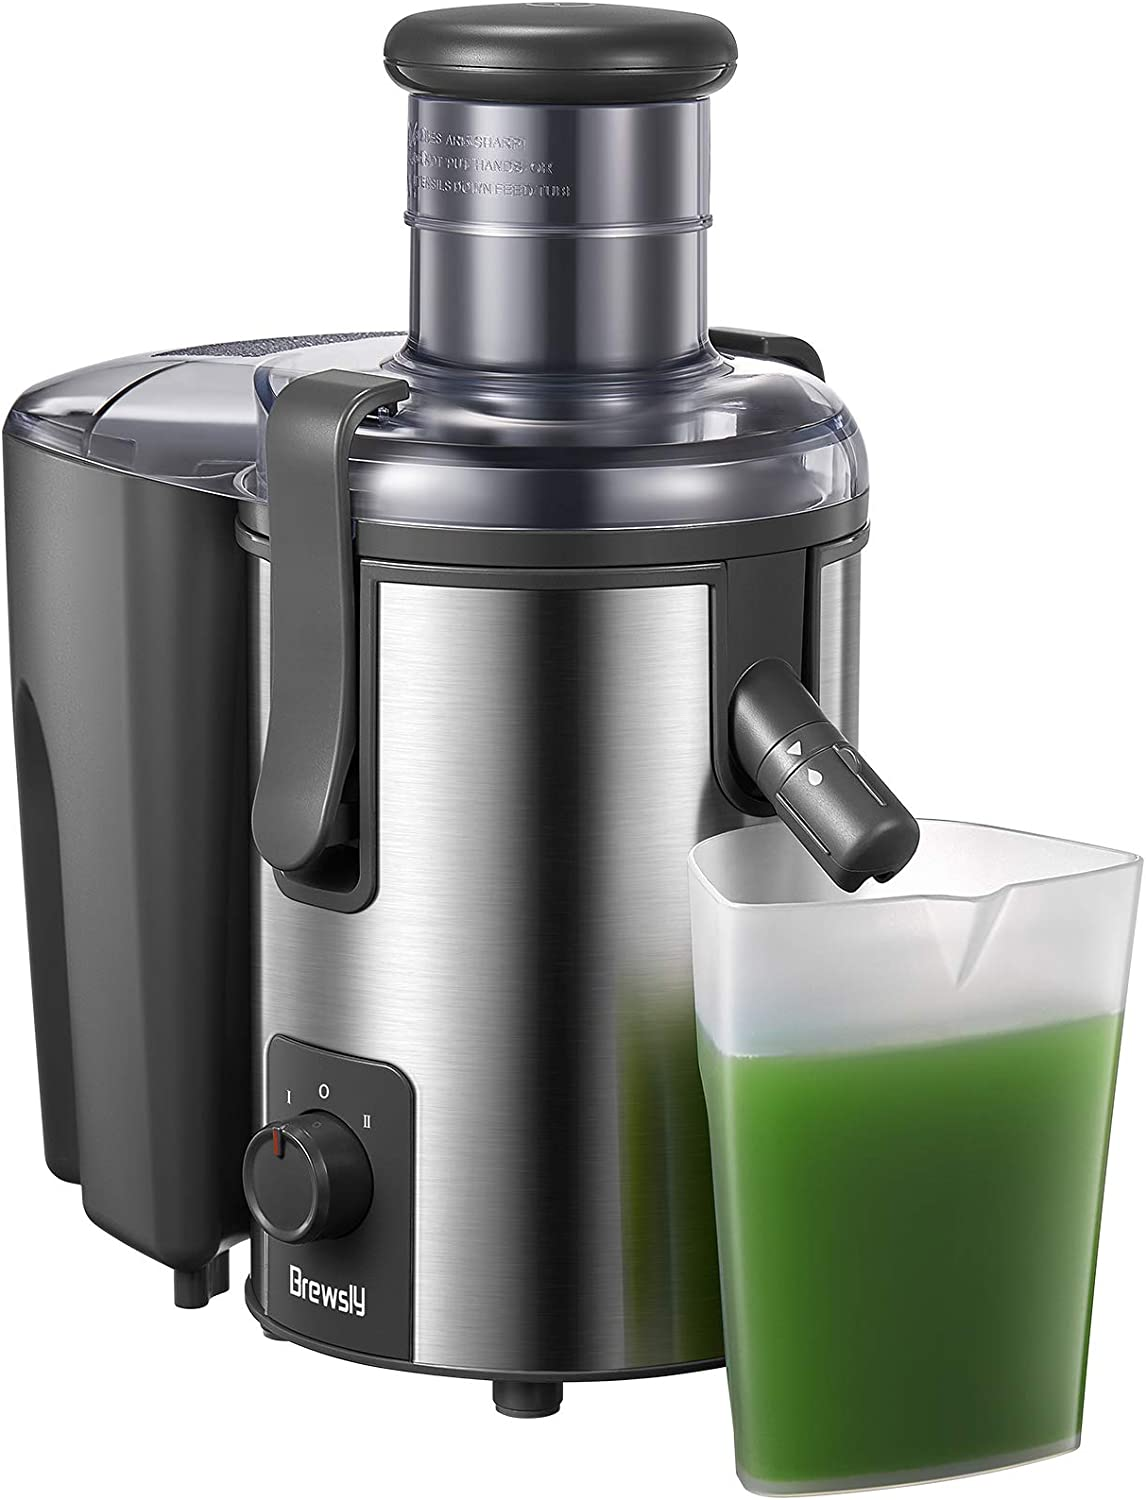 Juicer Machines, Brewsly Higher Juice Yield Juice Extractor Easy to Clean, Powerful 800W Motor for Vegetable and Fruit, 3'' Wide Mouth, Non-drip Function, 25 oz Juice Cup, BPA Free